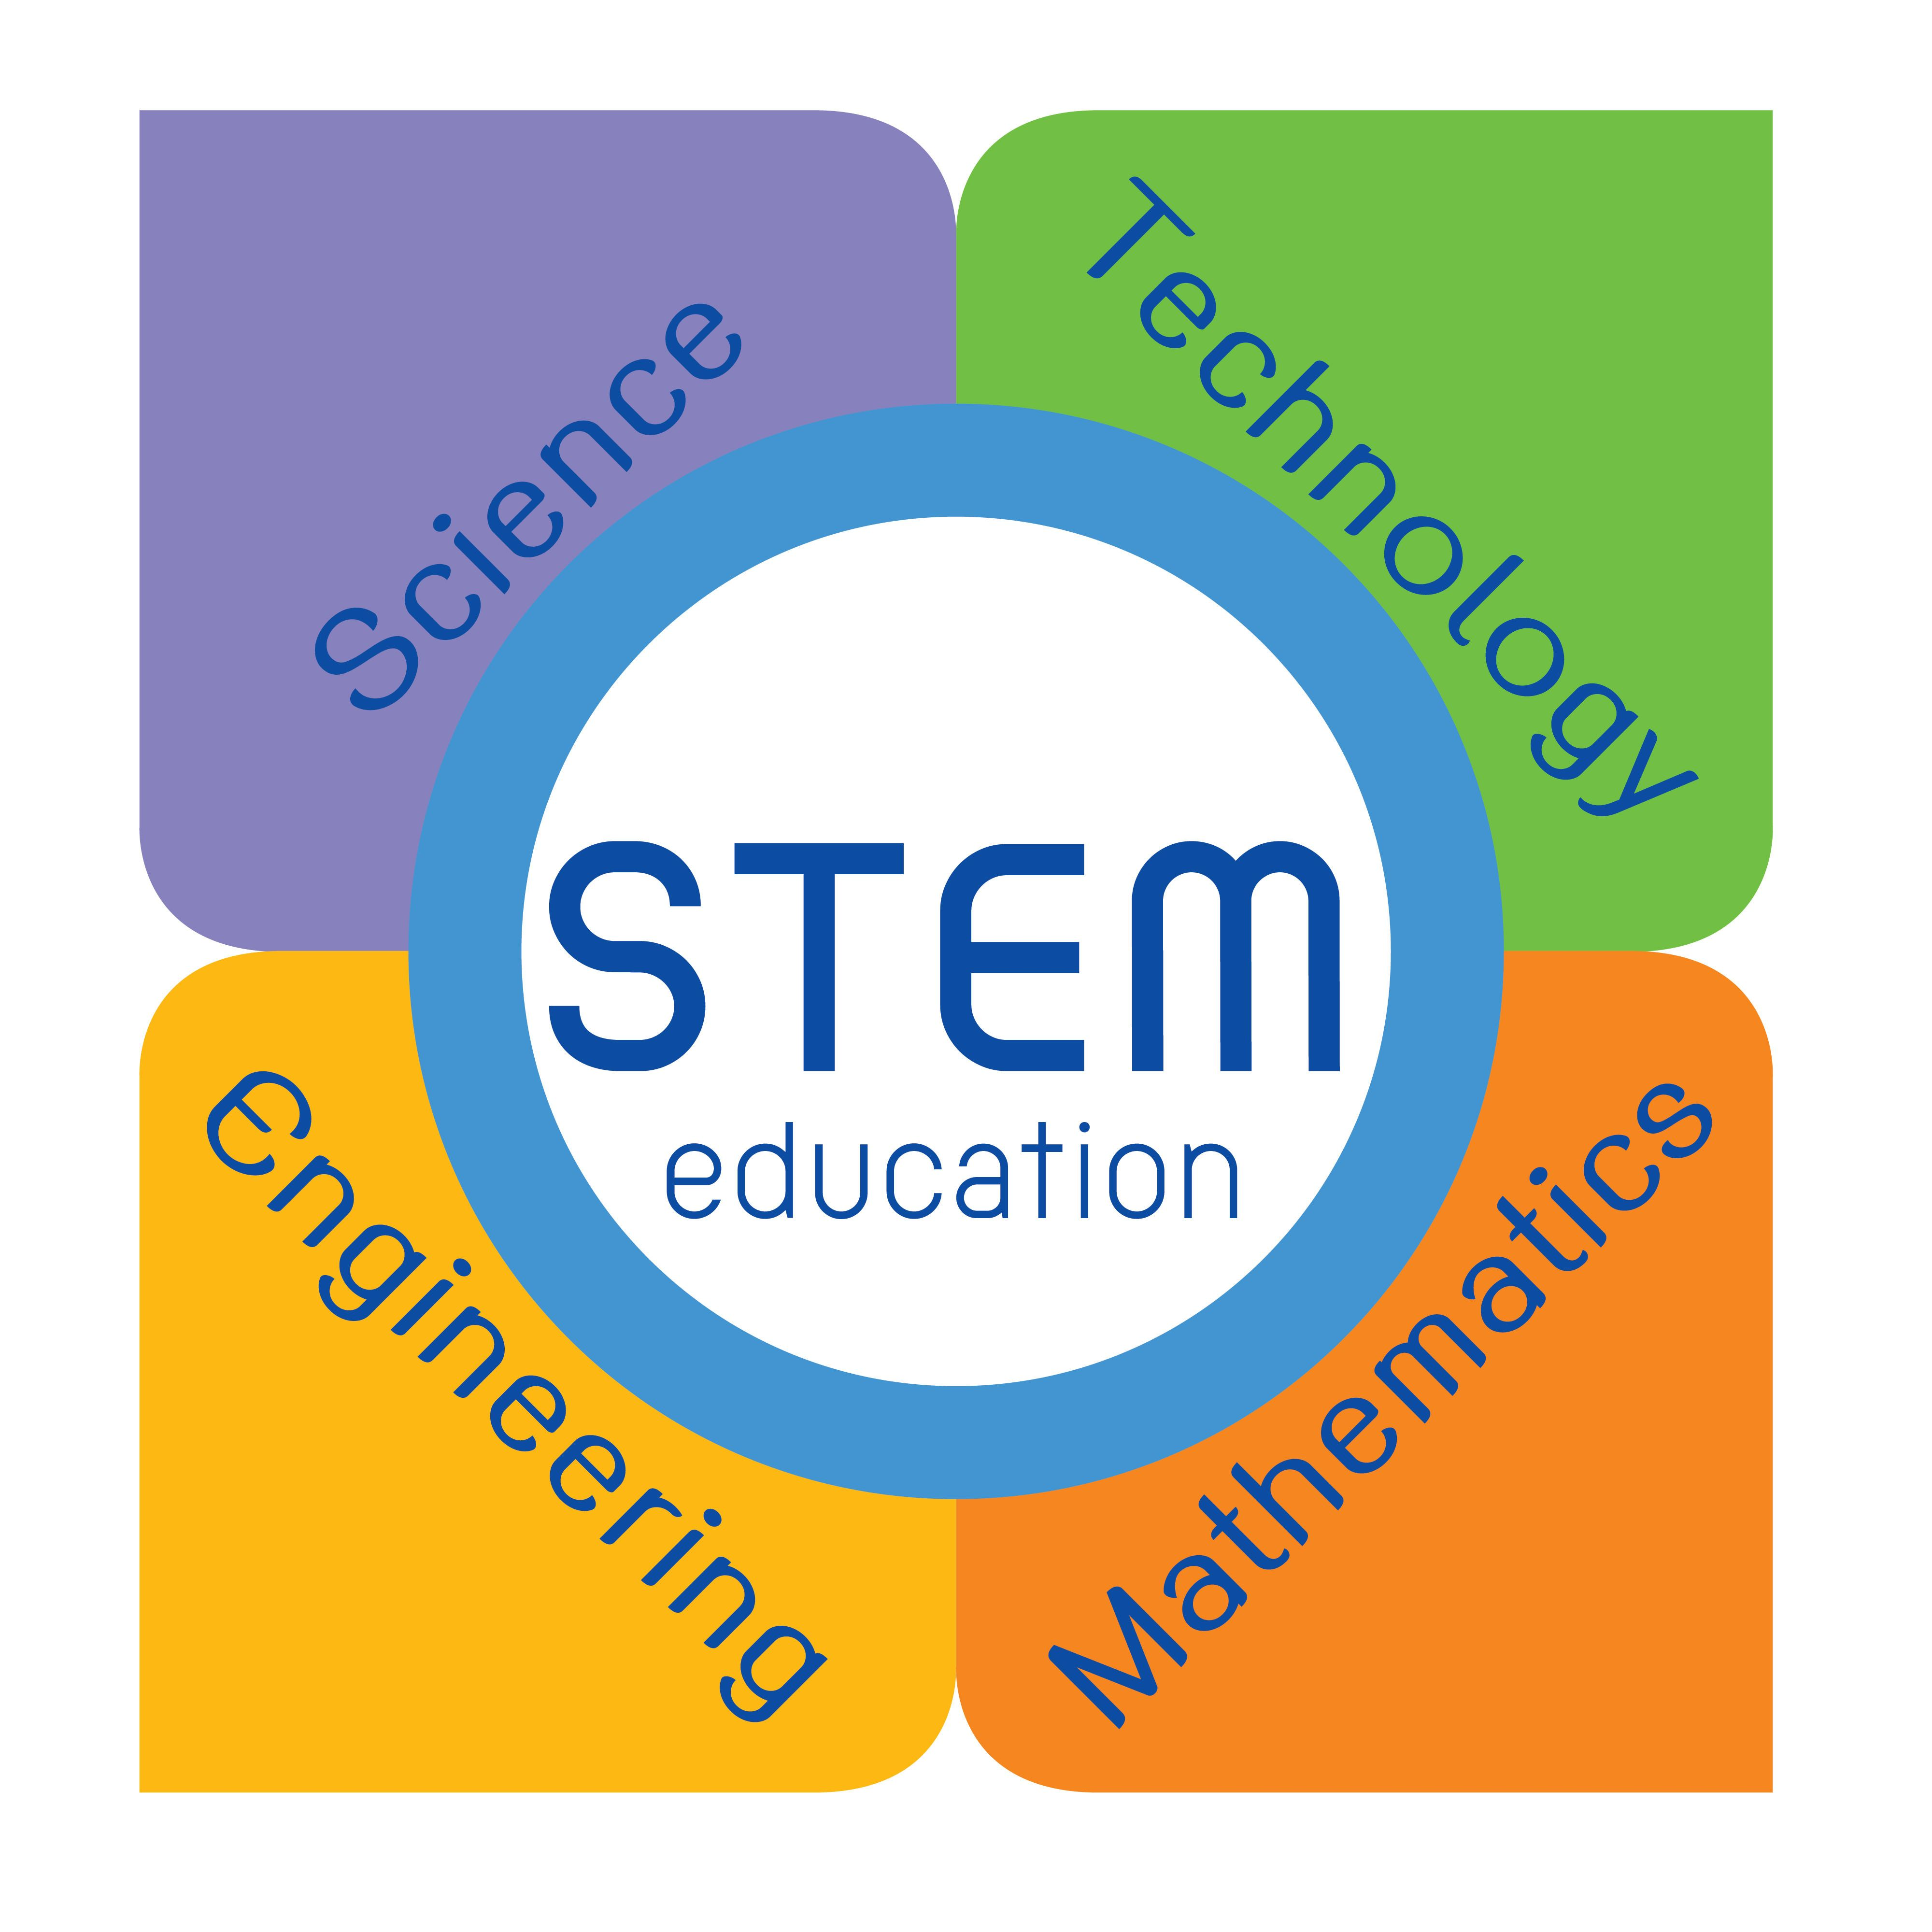 Current Education Issues Benefits Students In Stem